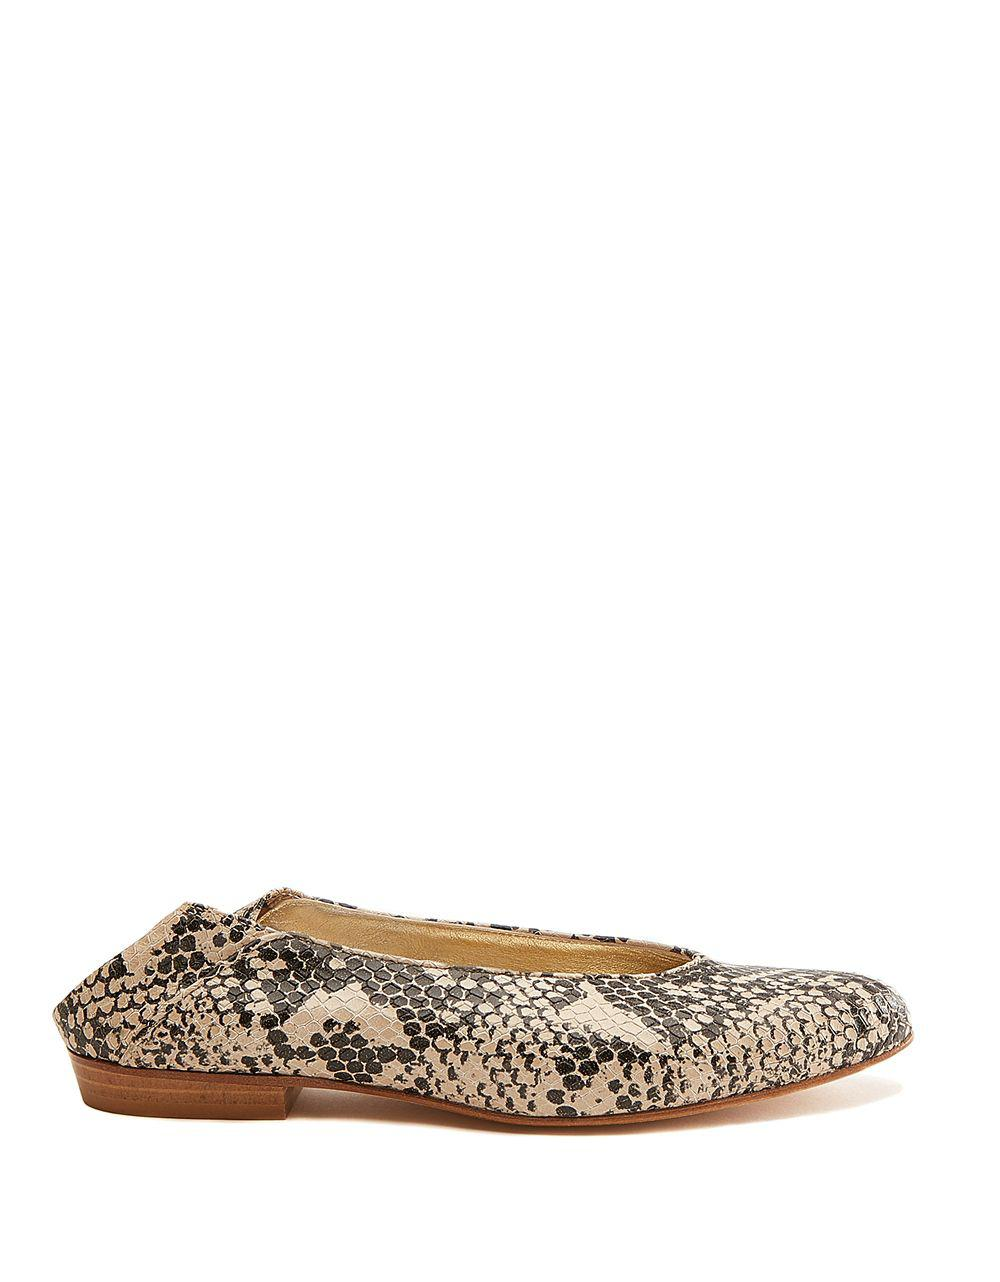 74c52e47c60 Lyst - Anne Klein Tillary Snake Print Leather Flats in Brown